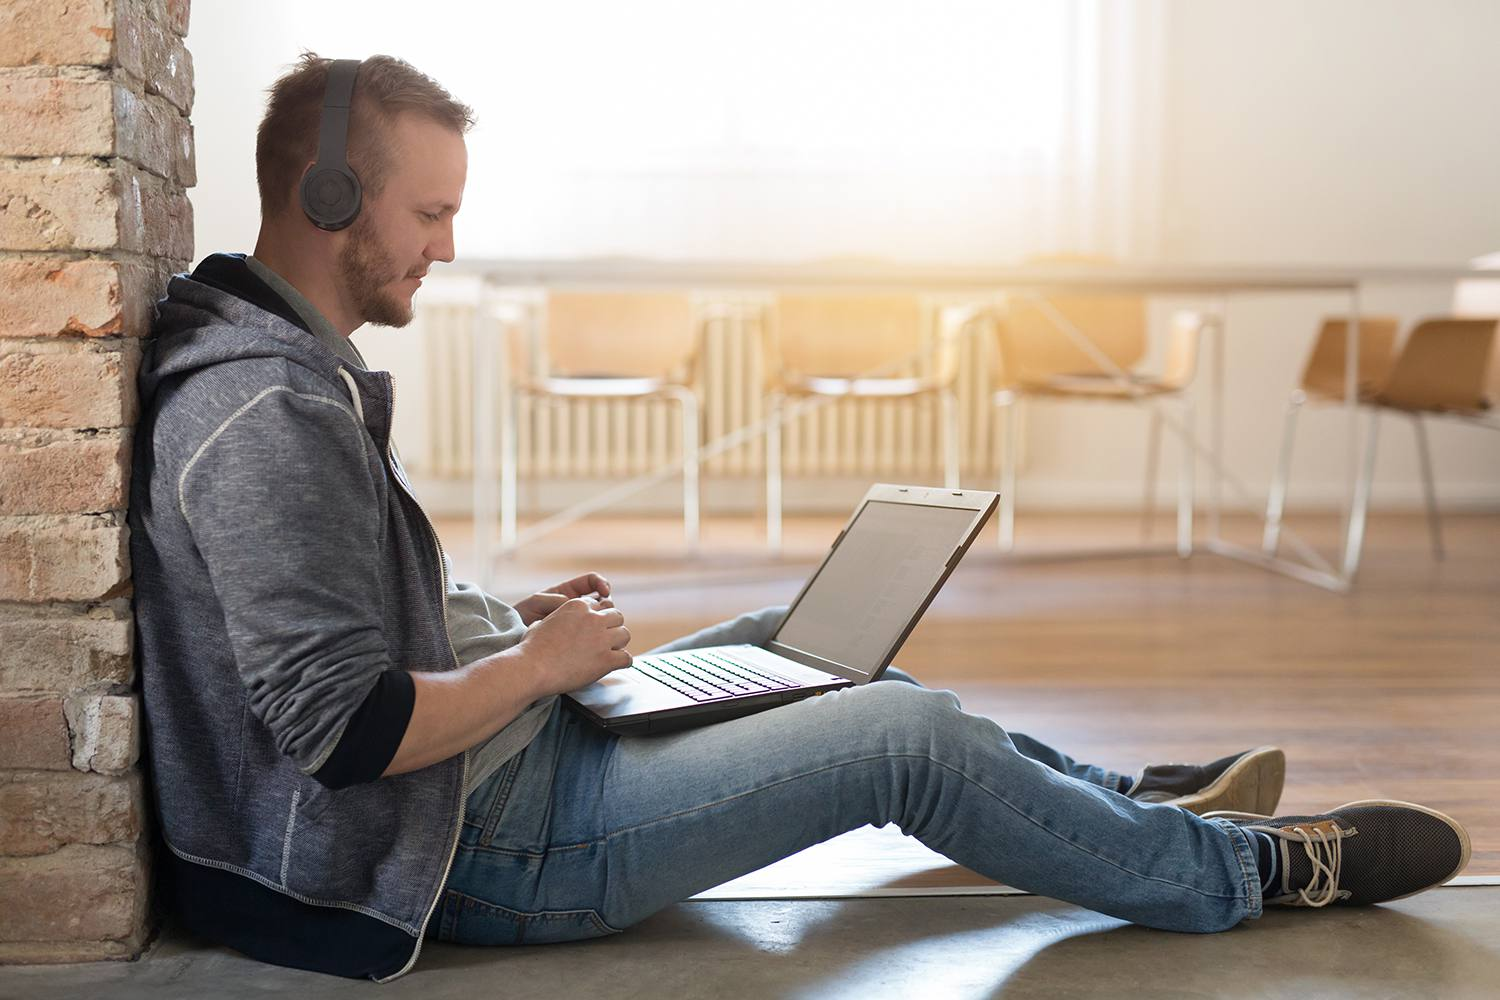 Remote worker with headphones and a laptop sitting